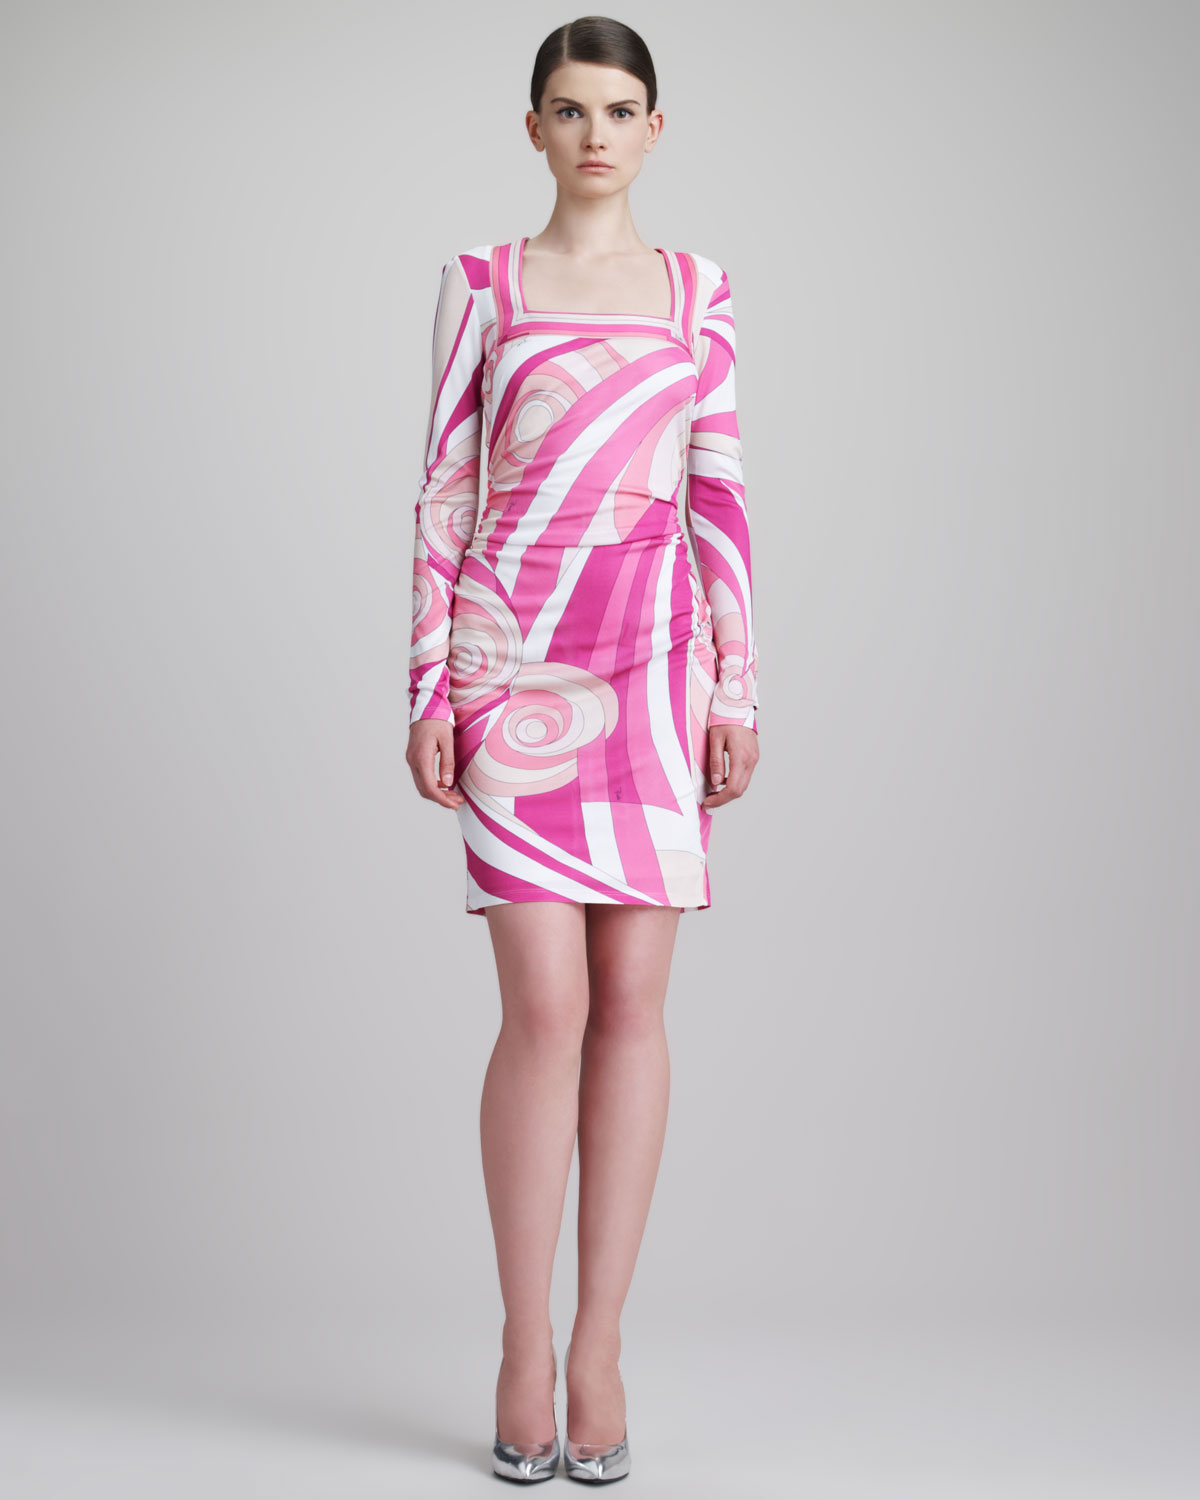 Lyst - Emilio Pucci Shirred-side Square neck Print Dress Pink in Pink ae3185b7f